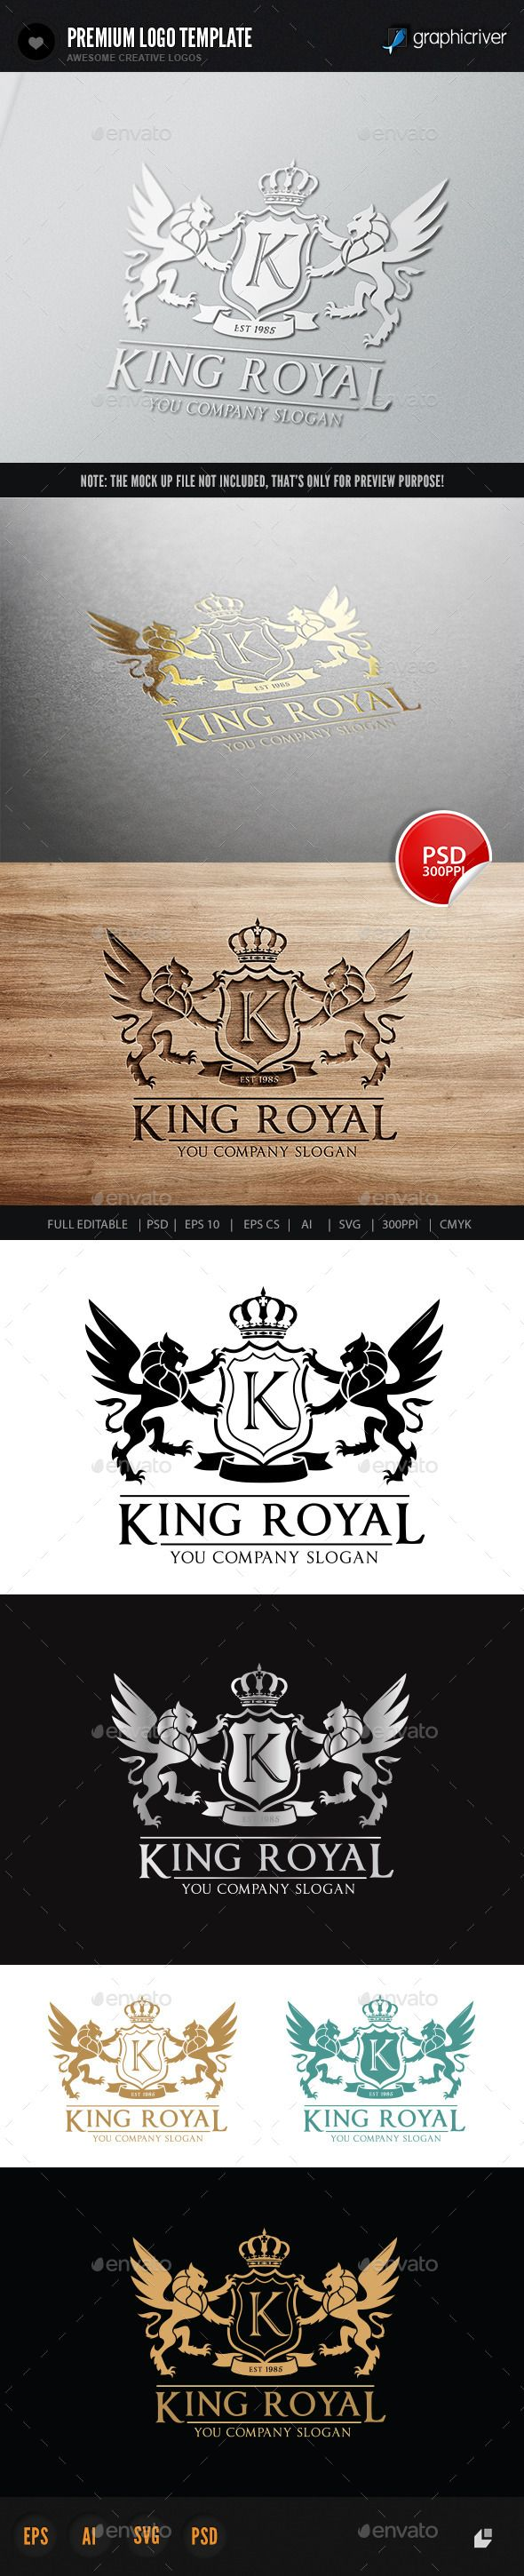 King Royal Logo II — Photoshop PSD #Animal Logo #unicorn • Available here → https://graphicriver.net/item/king-royal-logo-ii/6020985?ref=pxcr